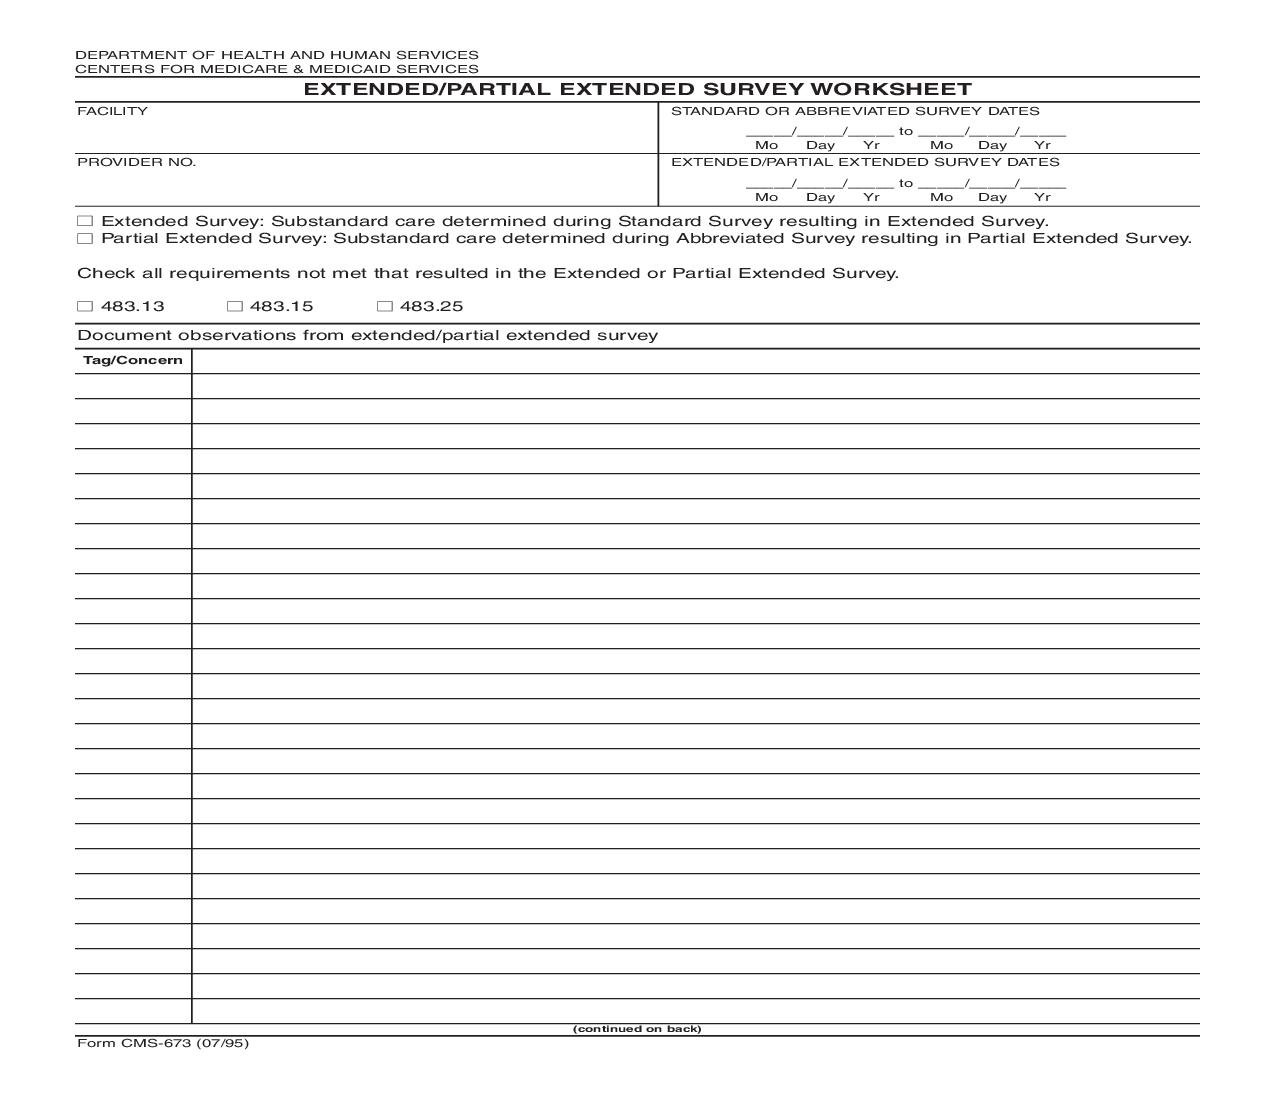 Extended-Partial Extended Survey Worksheet {CMS-673} | Pdf Fpdf Doc Docx | Official Federal Forms